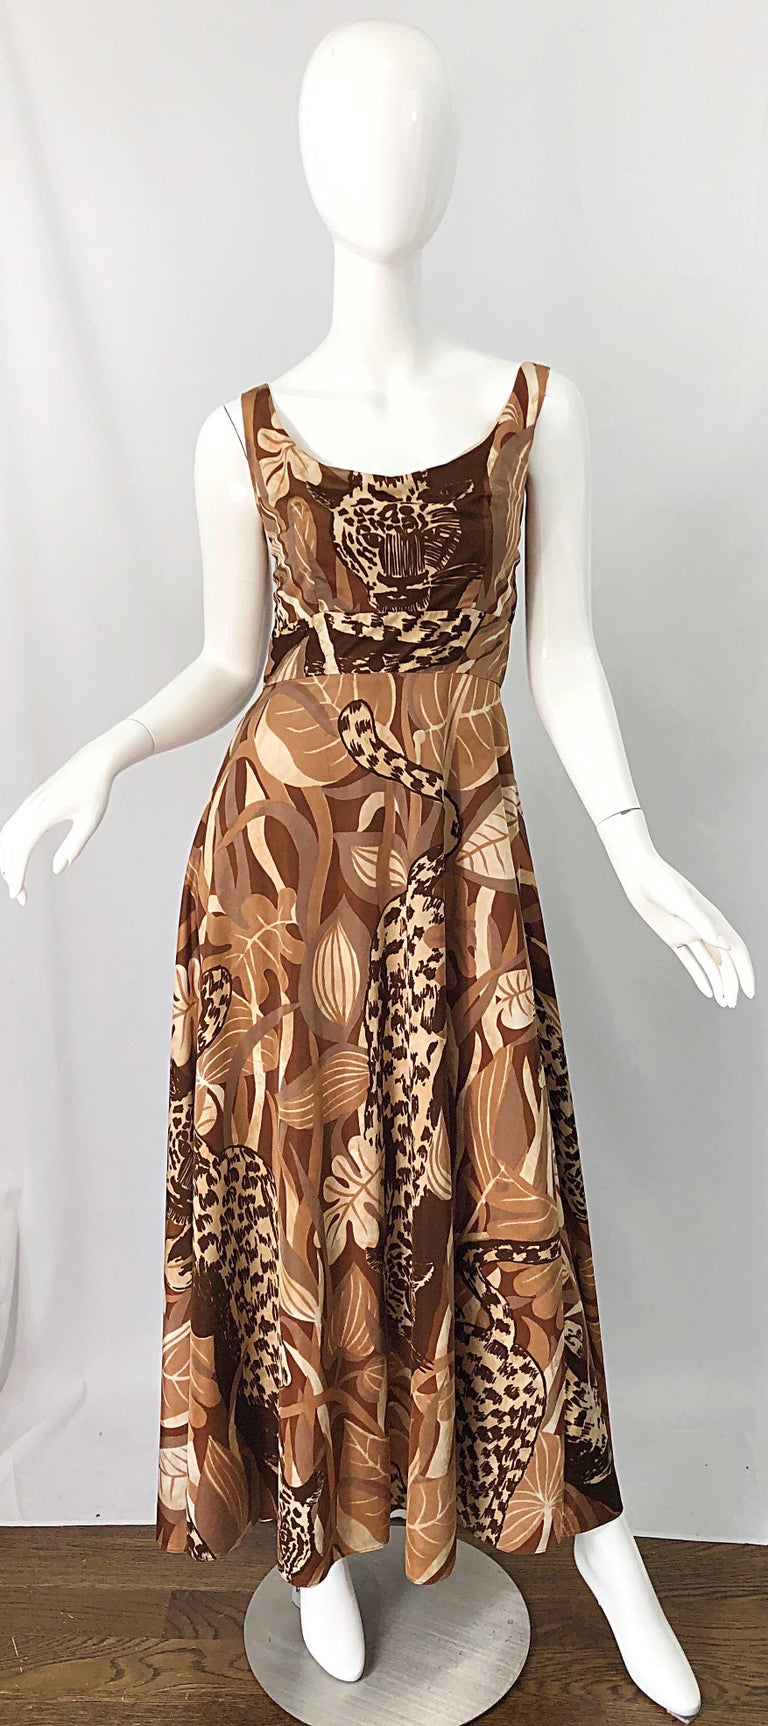 Channel your inner Joe Exotic from Tiger King in this 1970s FUTURA COUTURE leopard print sleeveless leopard print jersey maxi dress! Features leopard prints throughout in brown, ivory, white, terra cotta, and tan throughout. Tailored bodice with a